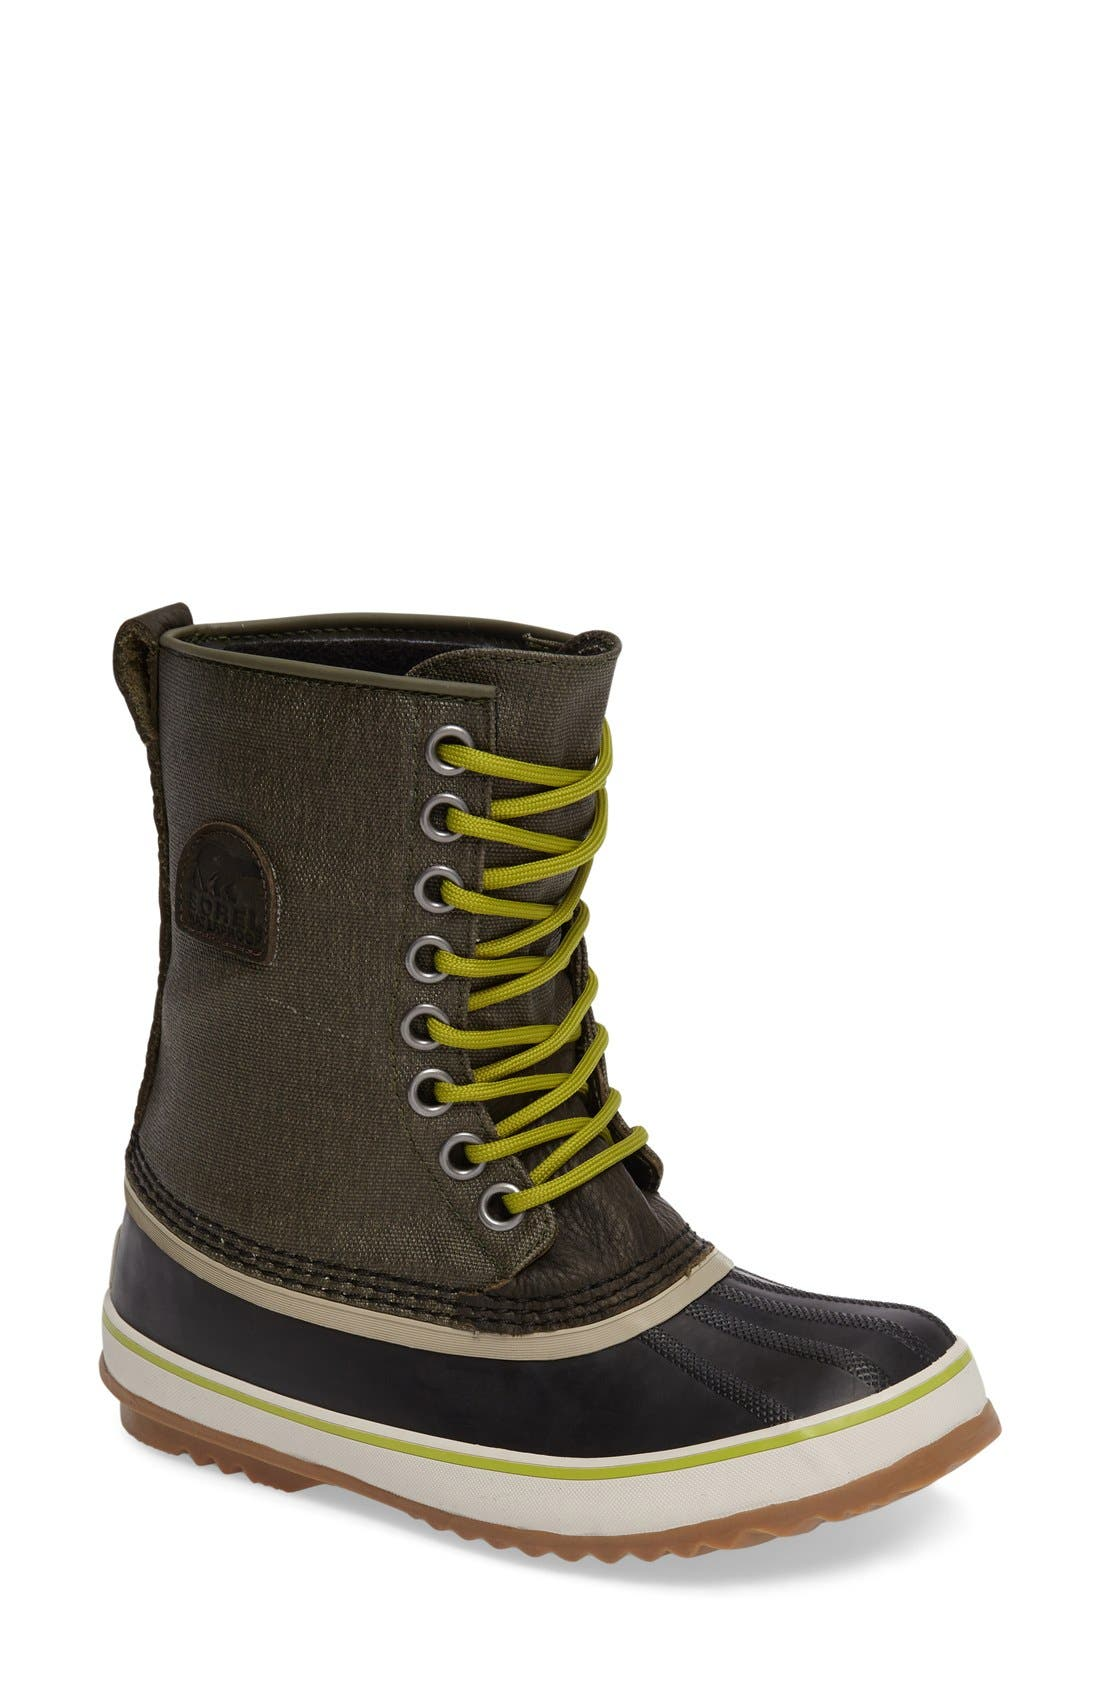 Alternate Image 1 Selected - SOREL '1964 Premium' Waterproof Boot (Women)